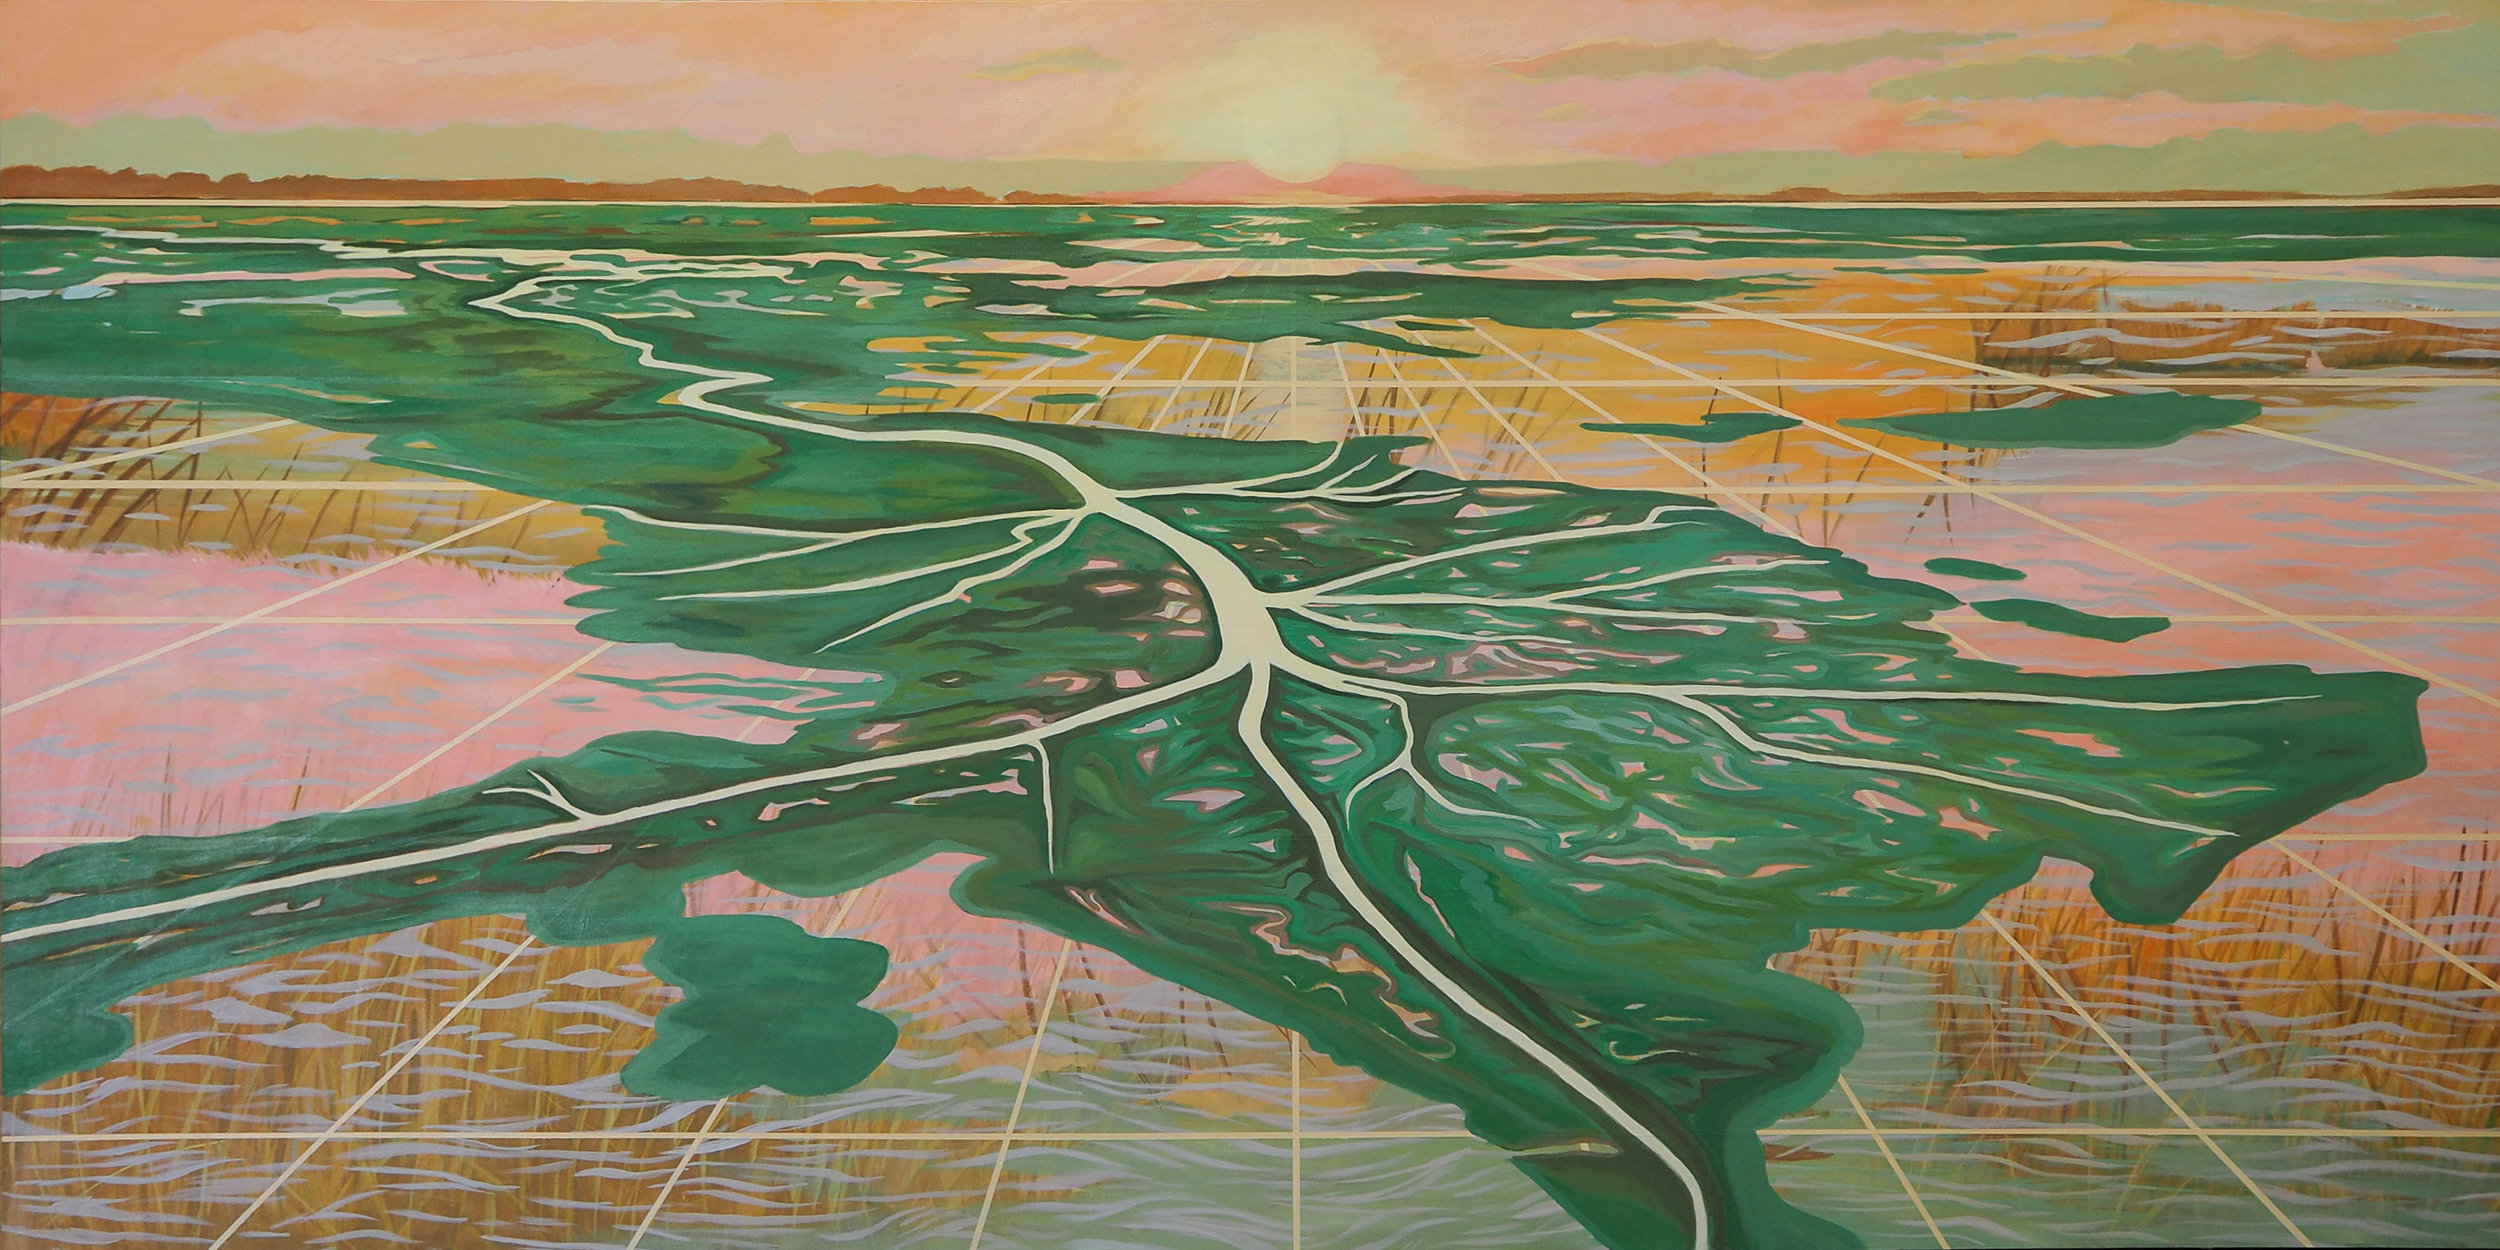 "Downstream , 48"" x 96"", acrylic on canvas, 2019 painted for the 24th Annual Tulane Environmental Law & Policy Summit  Since the Flood of 1927, the Mississippi river has been engineered and controlled, no longer depositing the large levels of rich sediment that feed the land over time. This modification along with the dire effects of industry has led our region to have one of the fastest eroding coastlines on Earth with more than an acre of land being lost every hour, about 25 to 35 square miles per year. Nearly 2,000 square miles have already vanished in less than a century. This loss of land, not only reduces acres of rich natural habitat for a vast tapestry of species, but also leaves New Orleans and many coastal developments vulnerable to storm surge and damage.  In this piece I take viewers to the coastline, where the waters of the Mississippi river meet the Gulf of Mexico. Like a sprawling lily pad it sits atop a collage of coastal marsh, water and lines. In my work, I collage painted layers of Louisiana ecology and topography to emulate and bring awareness to the natural and artificial processes of change in the region over time. The use of the perspective grids in my work draw the viewer's eye, but also hint at the man-made canals that cut through our fragile wetlands by industry. By collaging together these native elements of Southern Louisiana I celebrate the beauty of living with these natural features and consider how our modifications to natural systems will portend for the region's health in the long run."